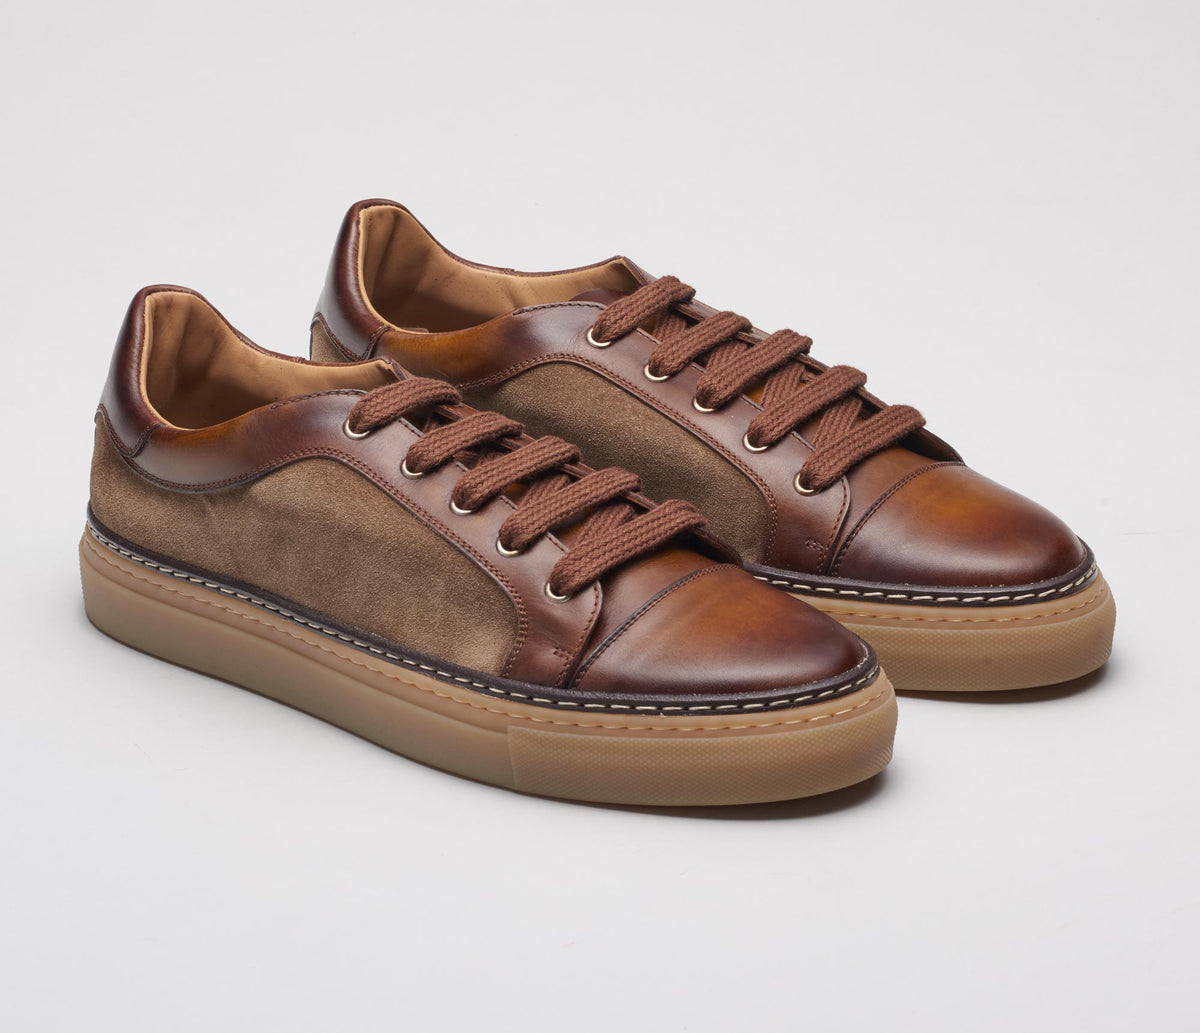 The Messina Sesamo Leather Sneakers for Men